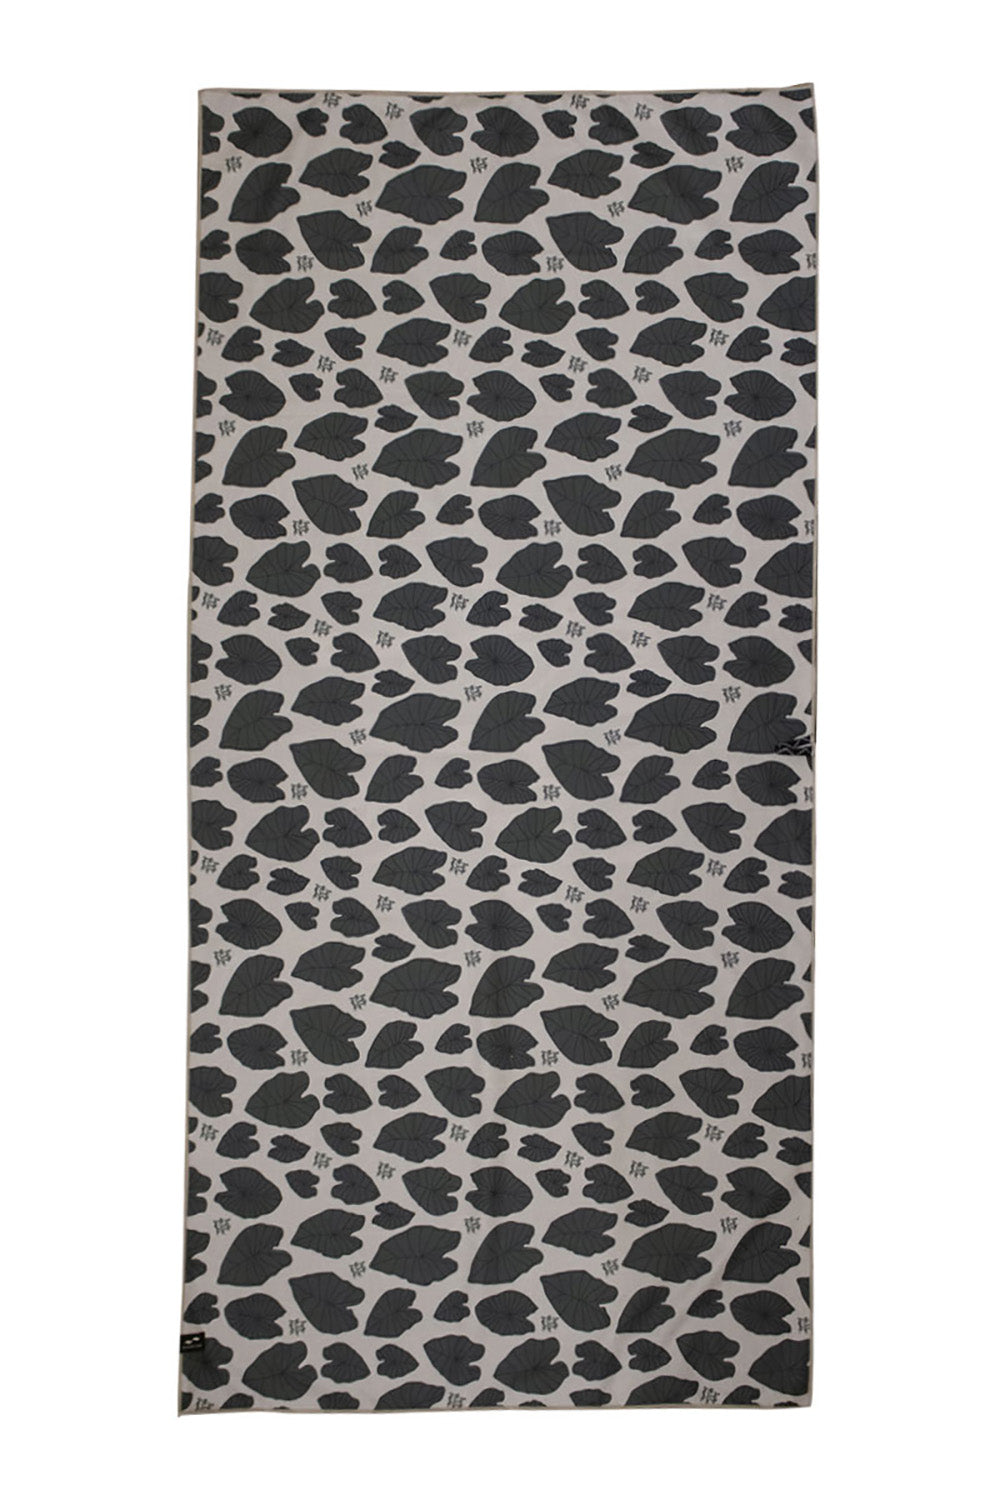 LWLH Cheetah Kalo Quick Dry Towel